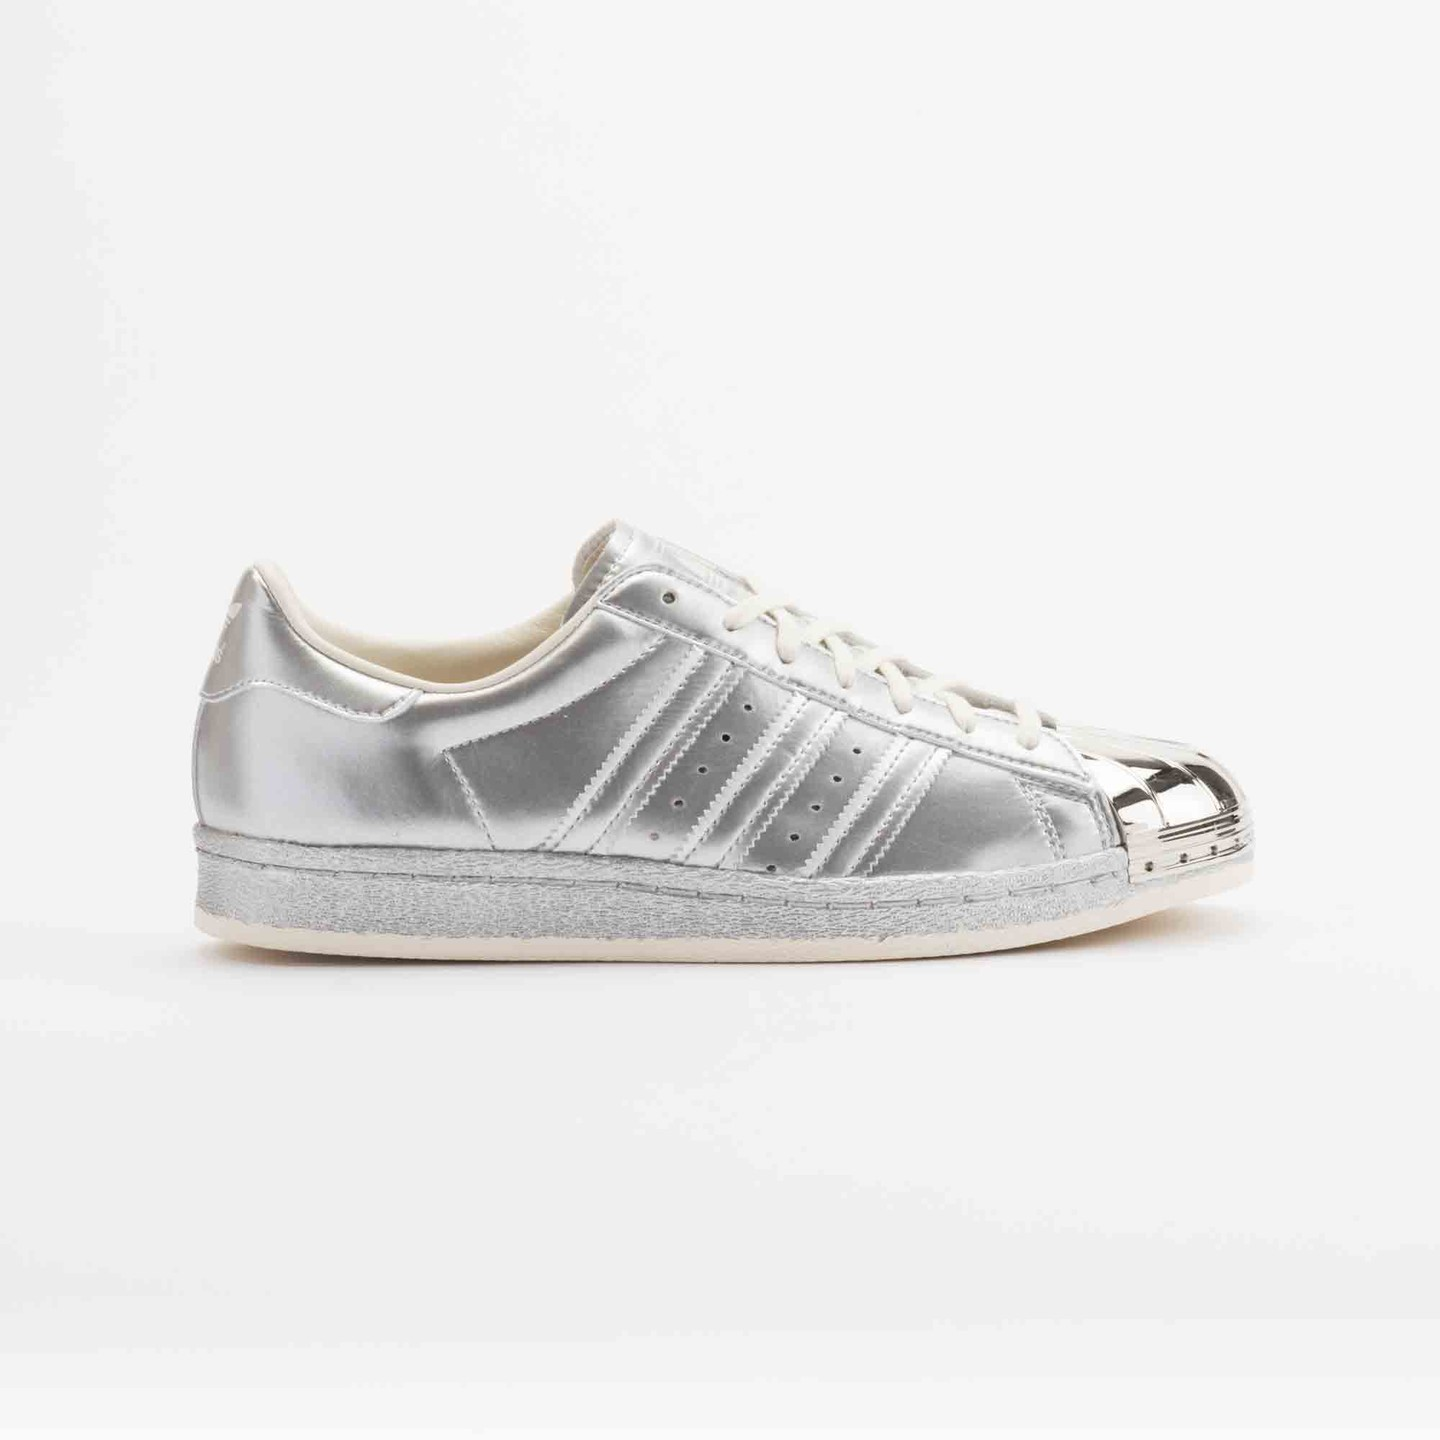 Adidas Superstar 80s Metallic Pack Silver Metallic S82741-41.33